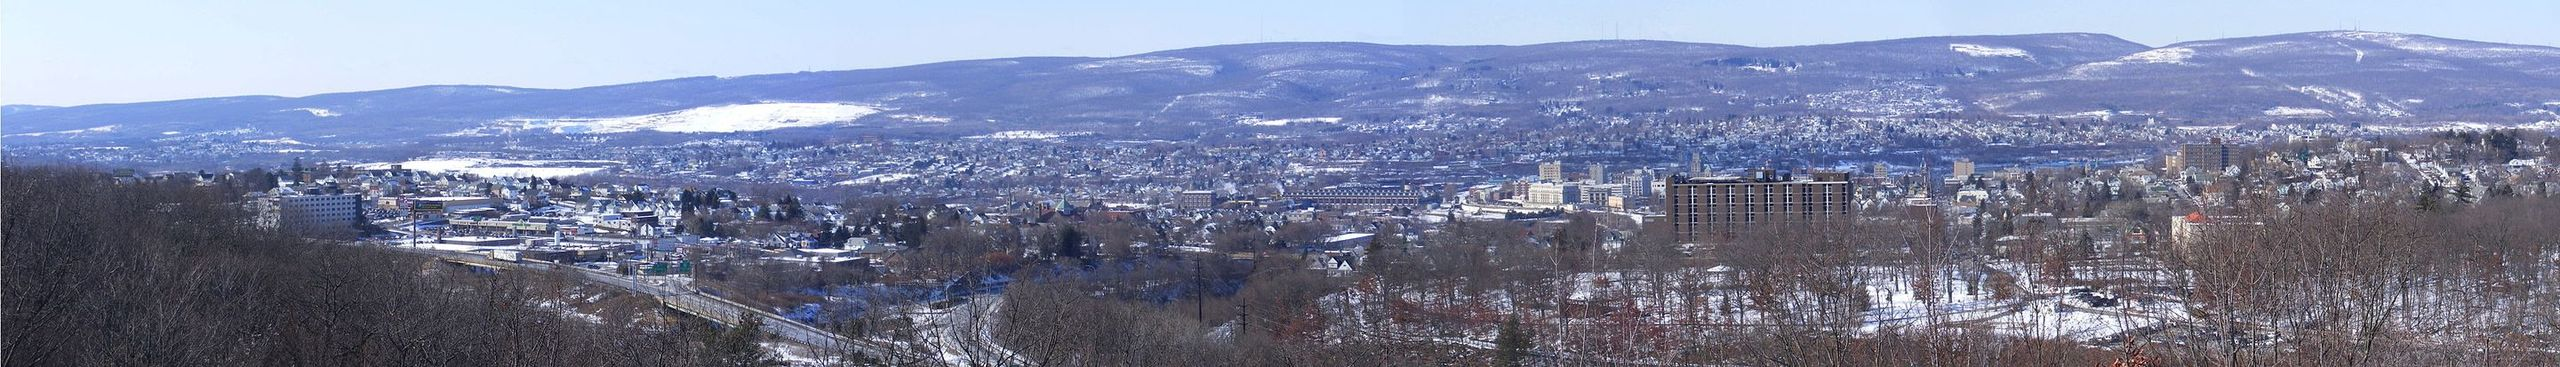 Scranton – Travel guide at Wikivoyage on